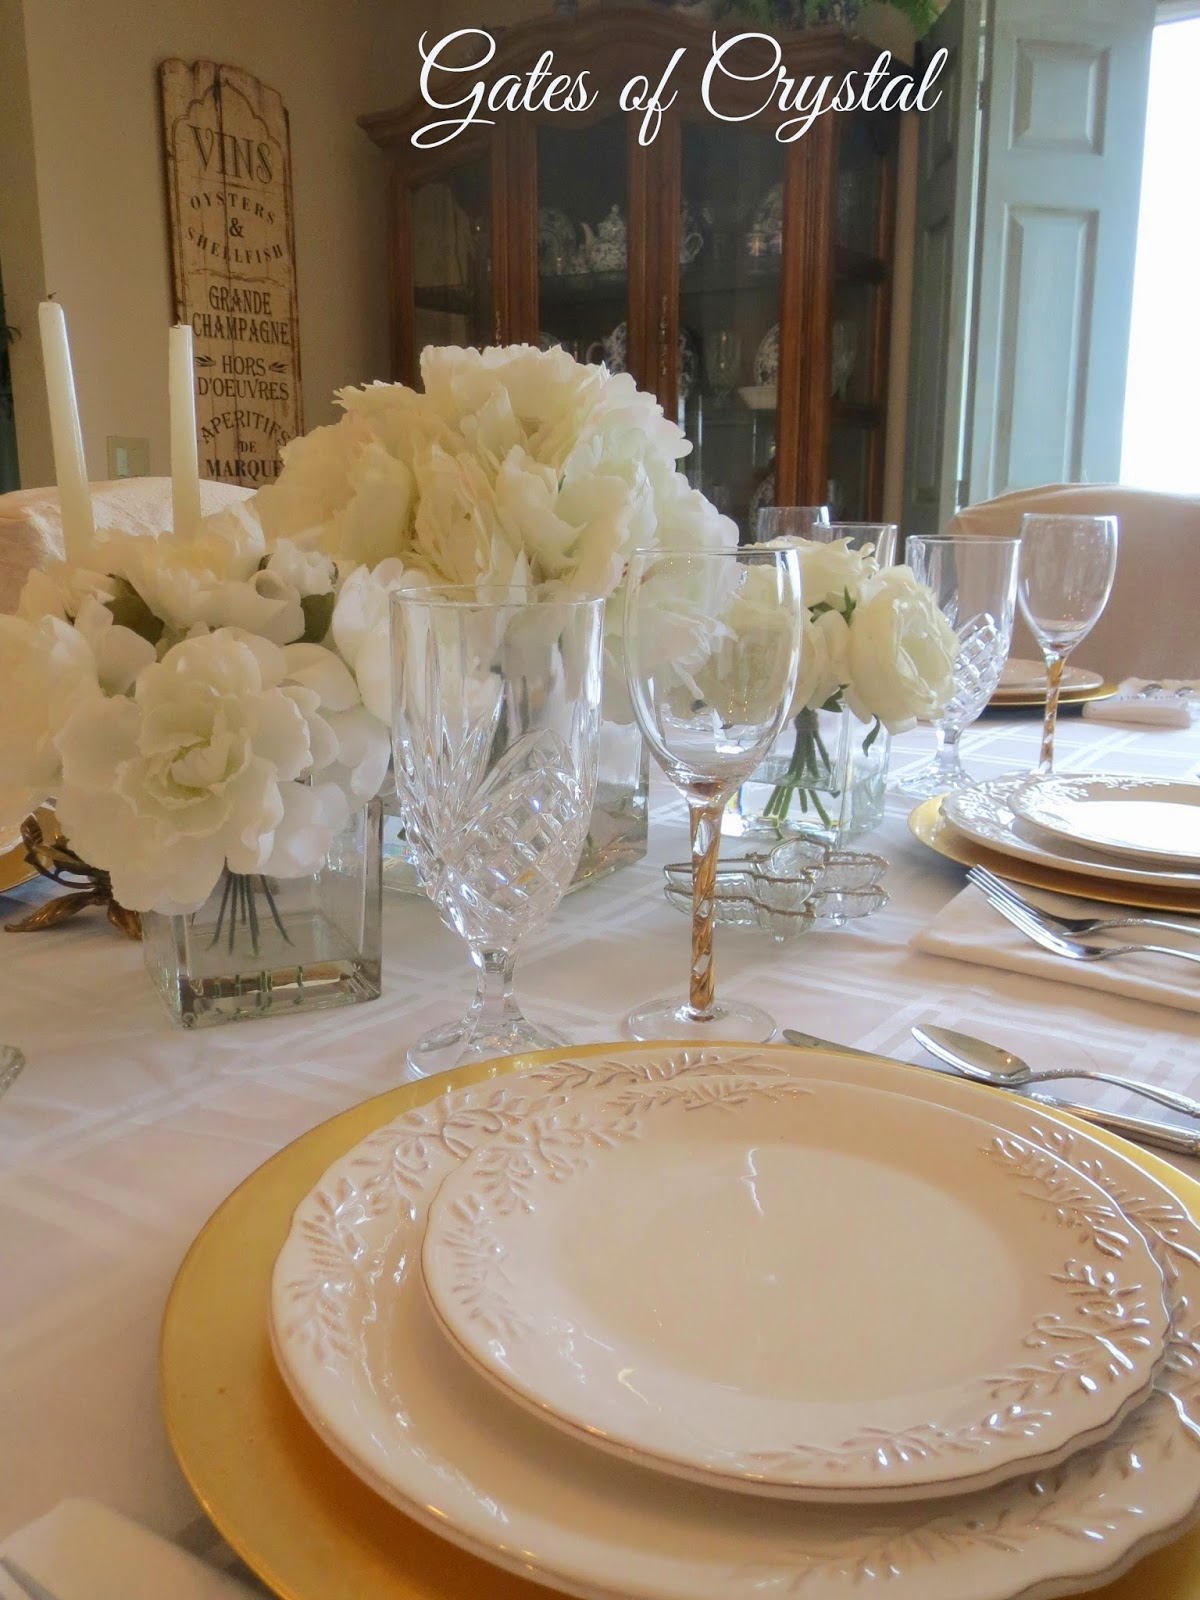 Gates of Crystal: White and Gold Table Setting